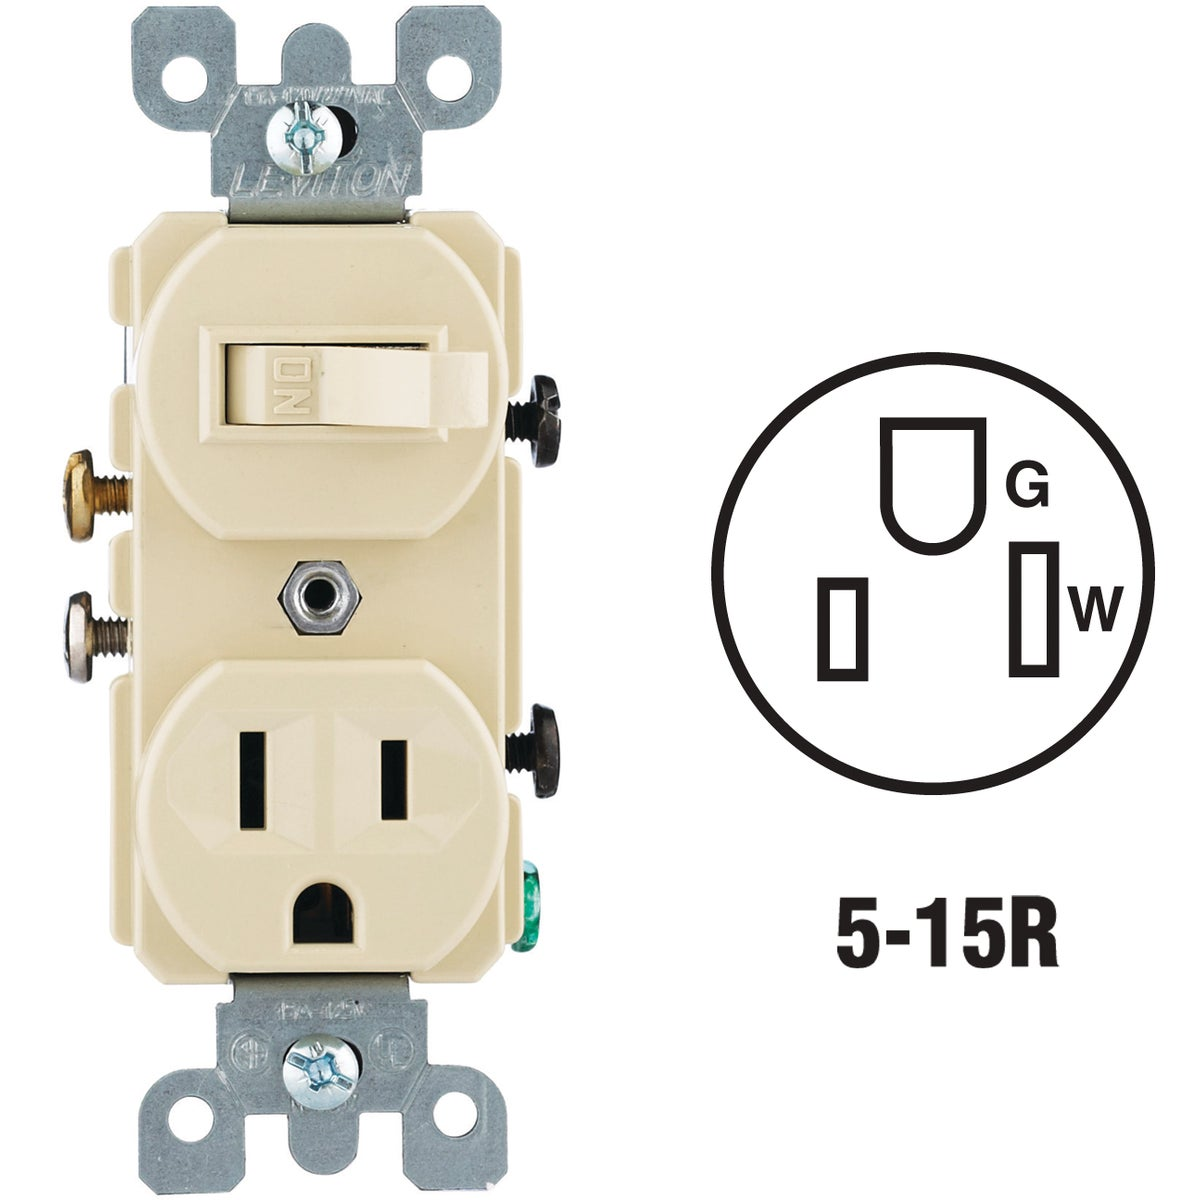 IV SWITCH/OUTLET - 8795225I by Leviton Mfg Co